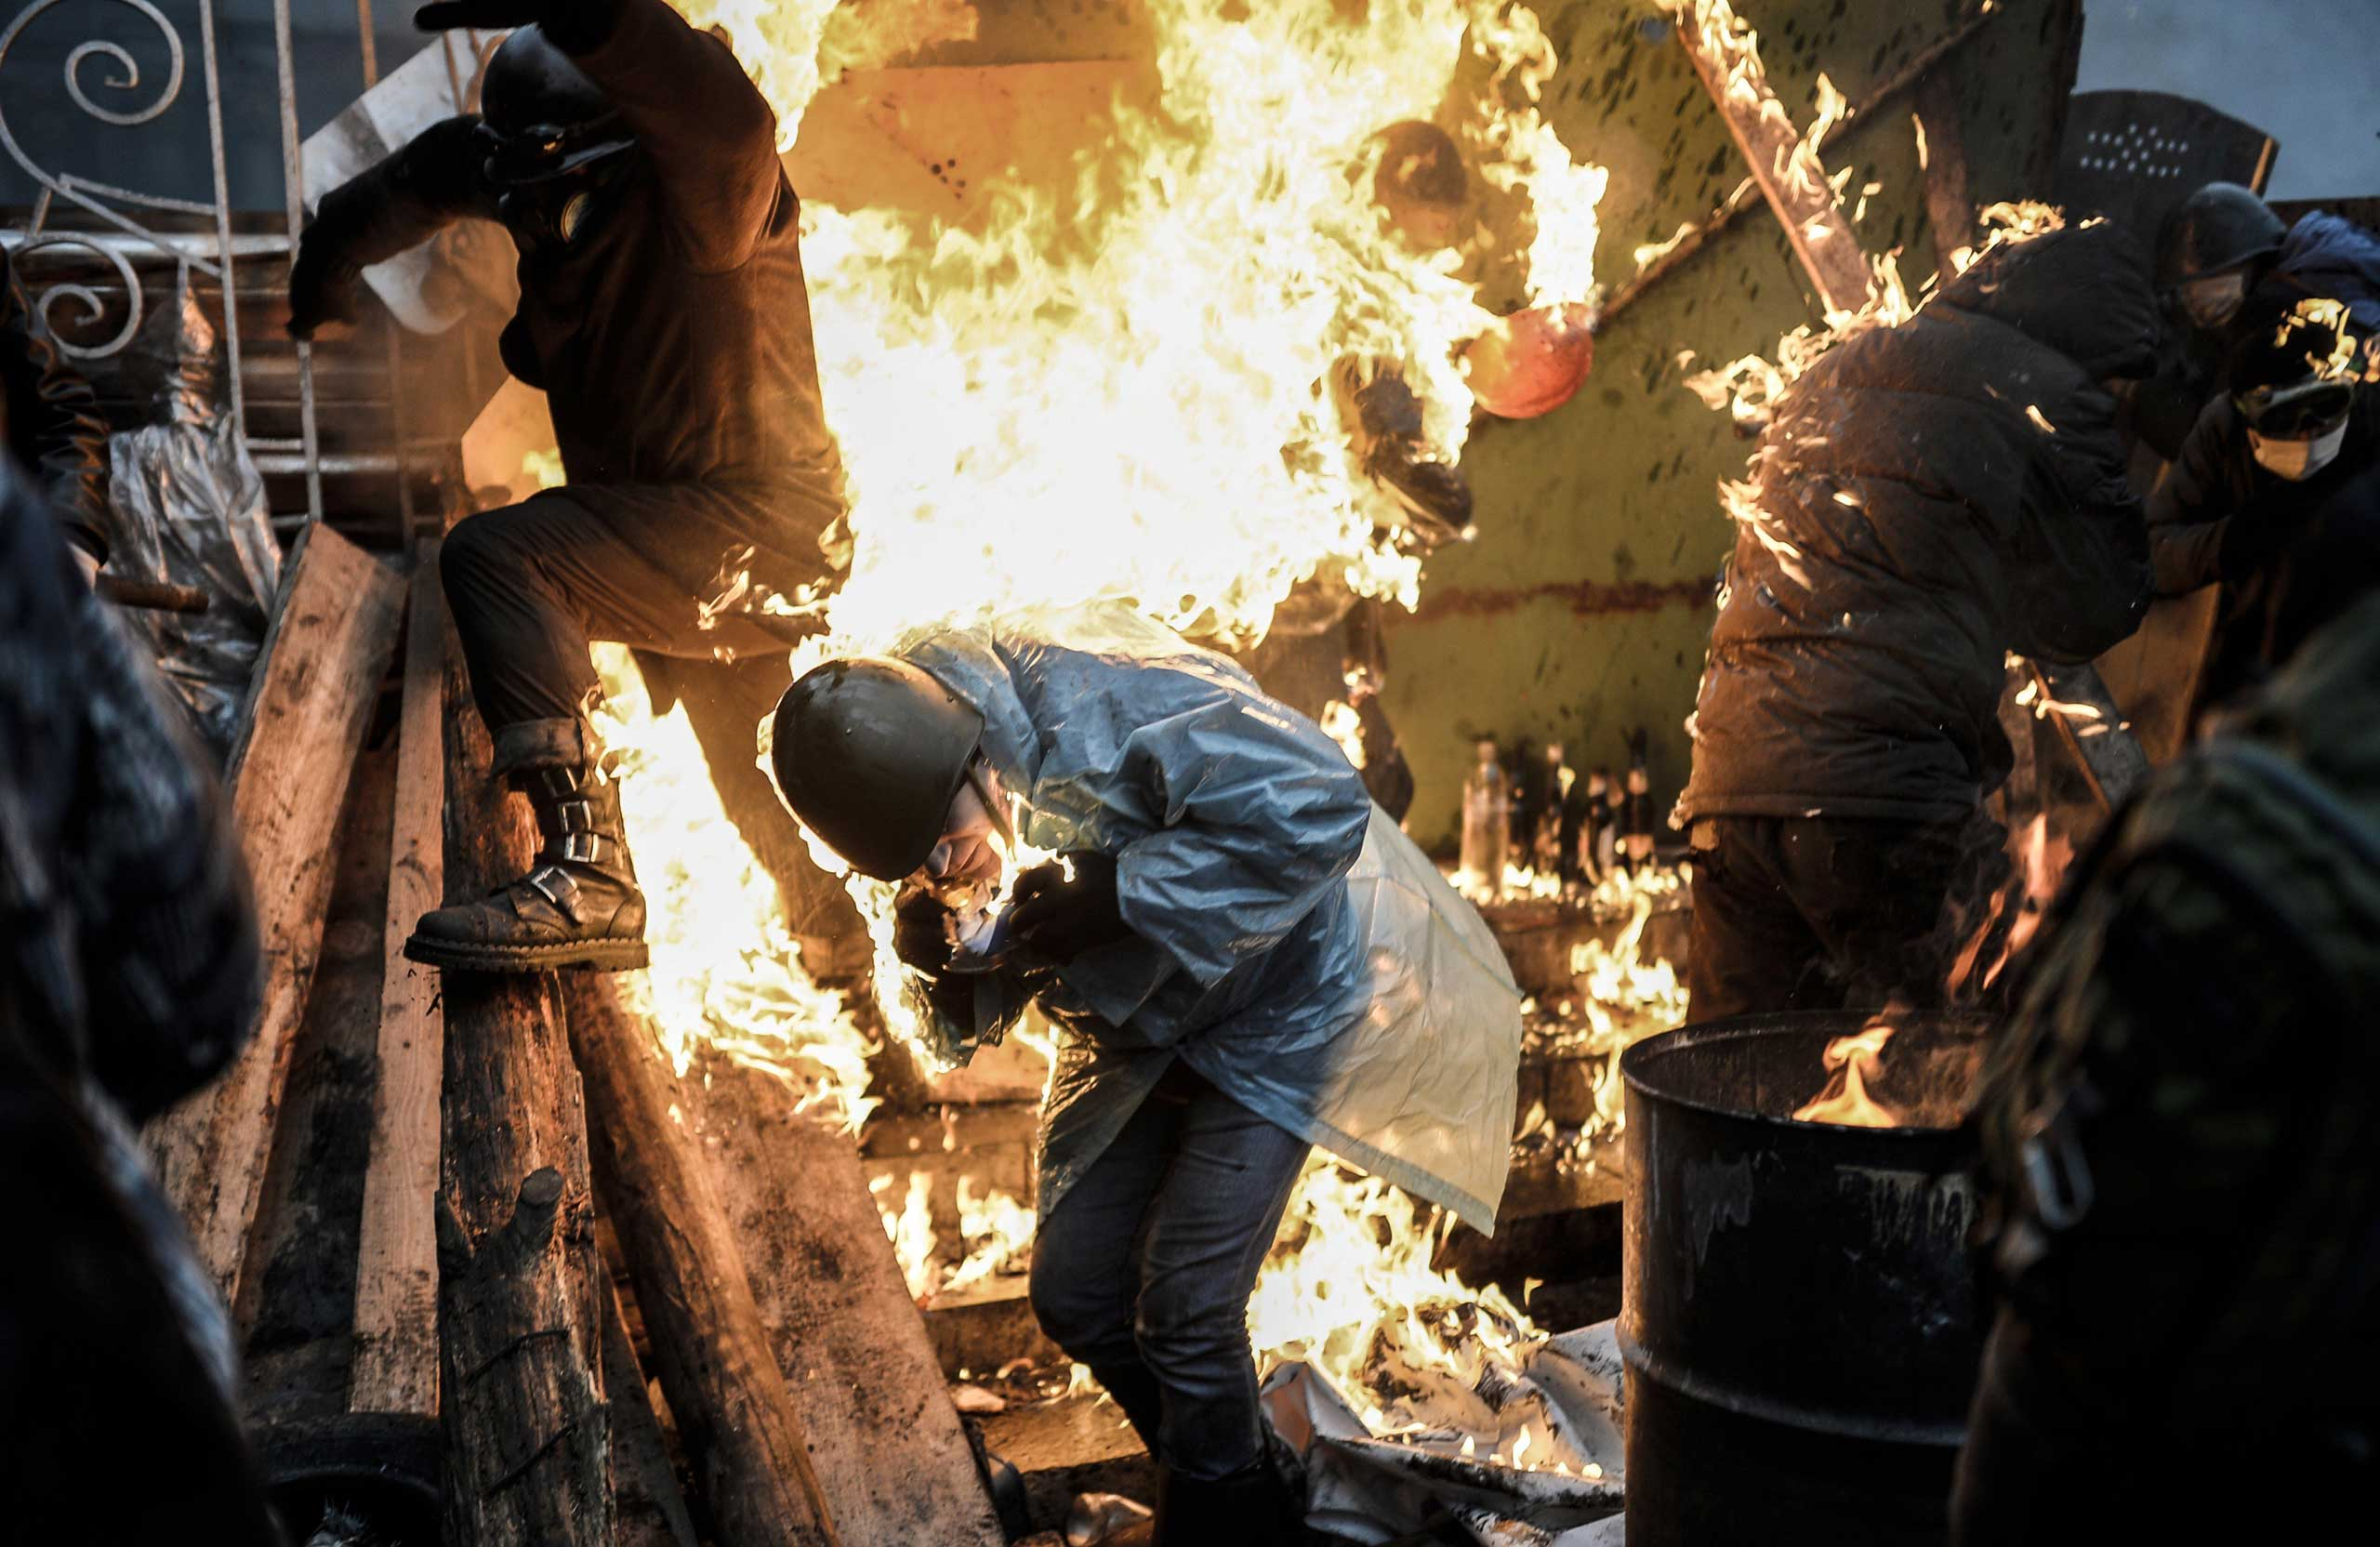 Protesters burn as they stand behind  barricades during clashes with police on February 20, 2014 in Kiev.